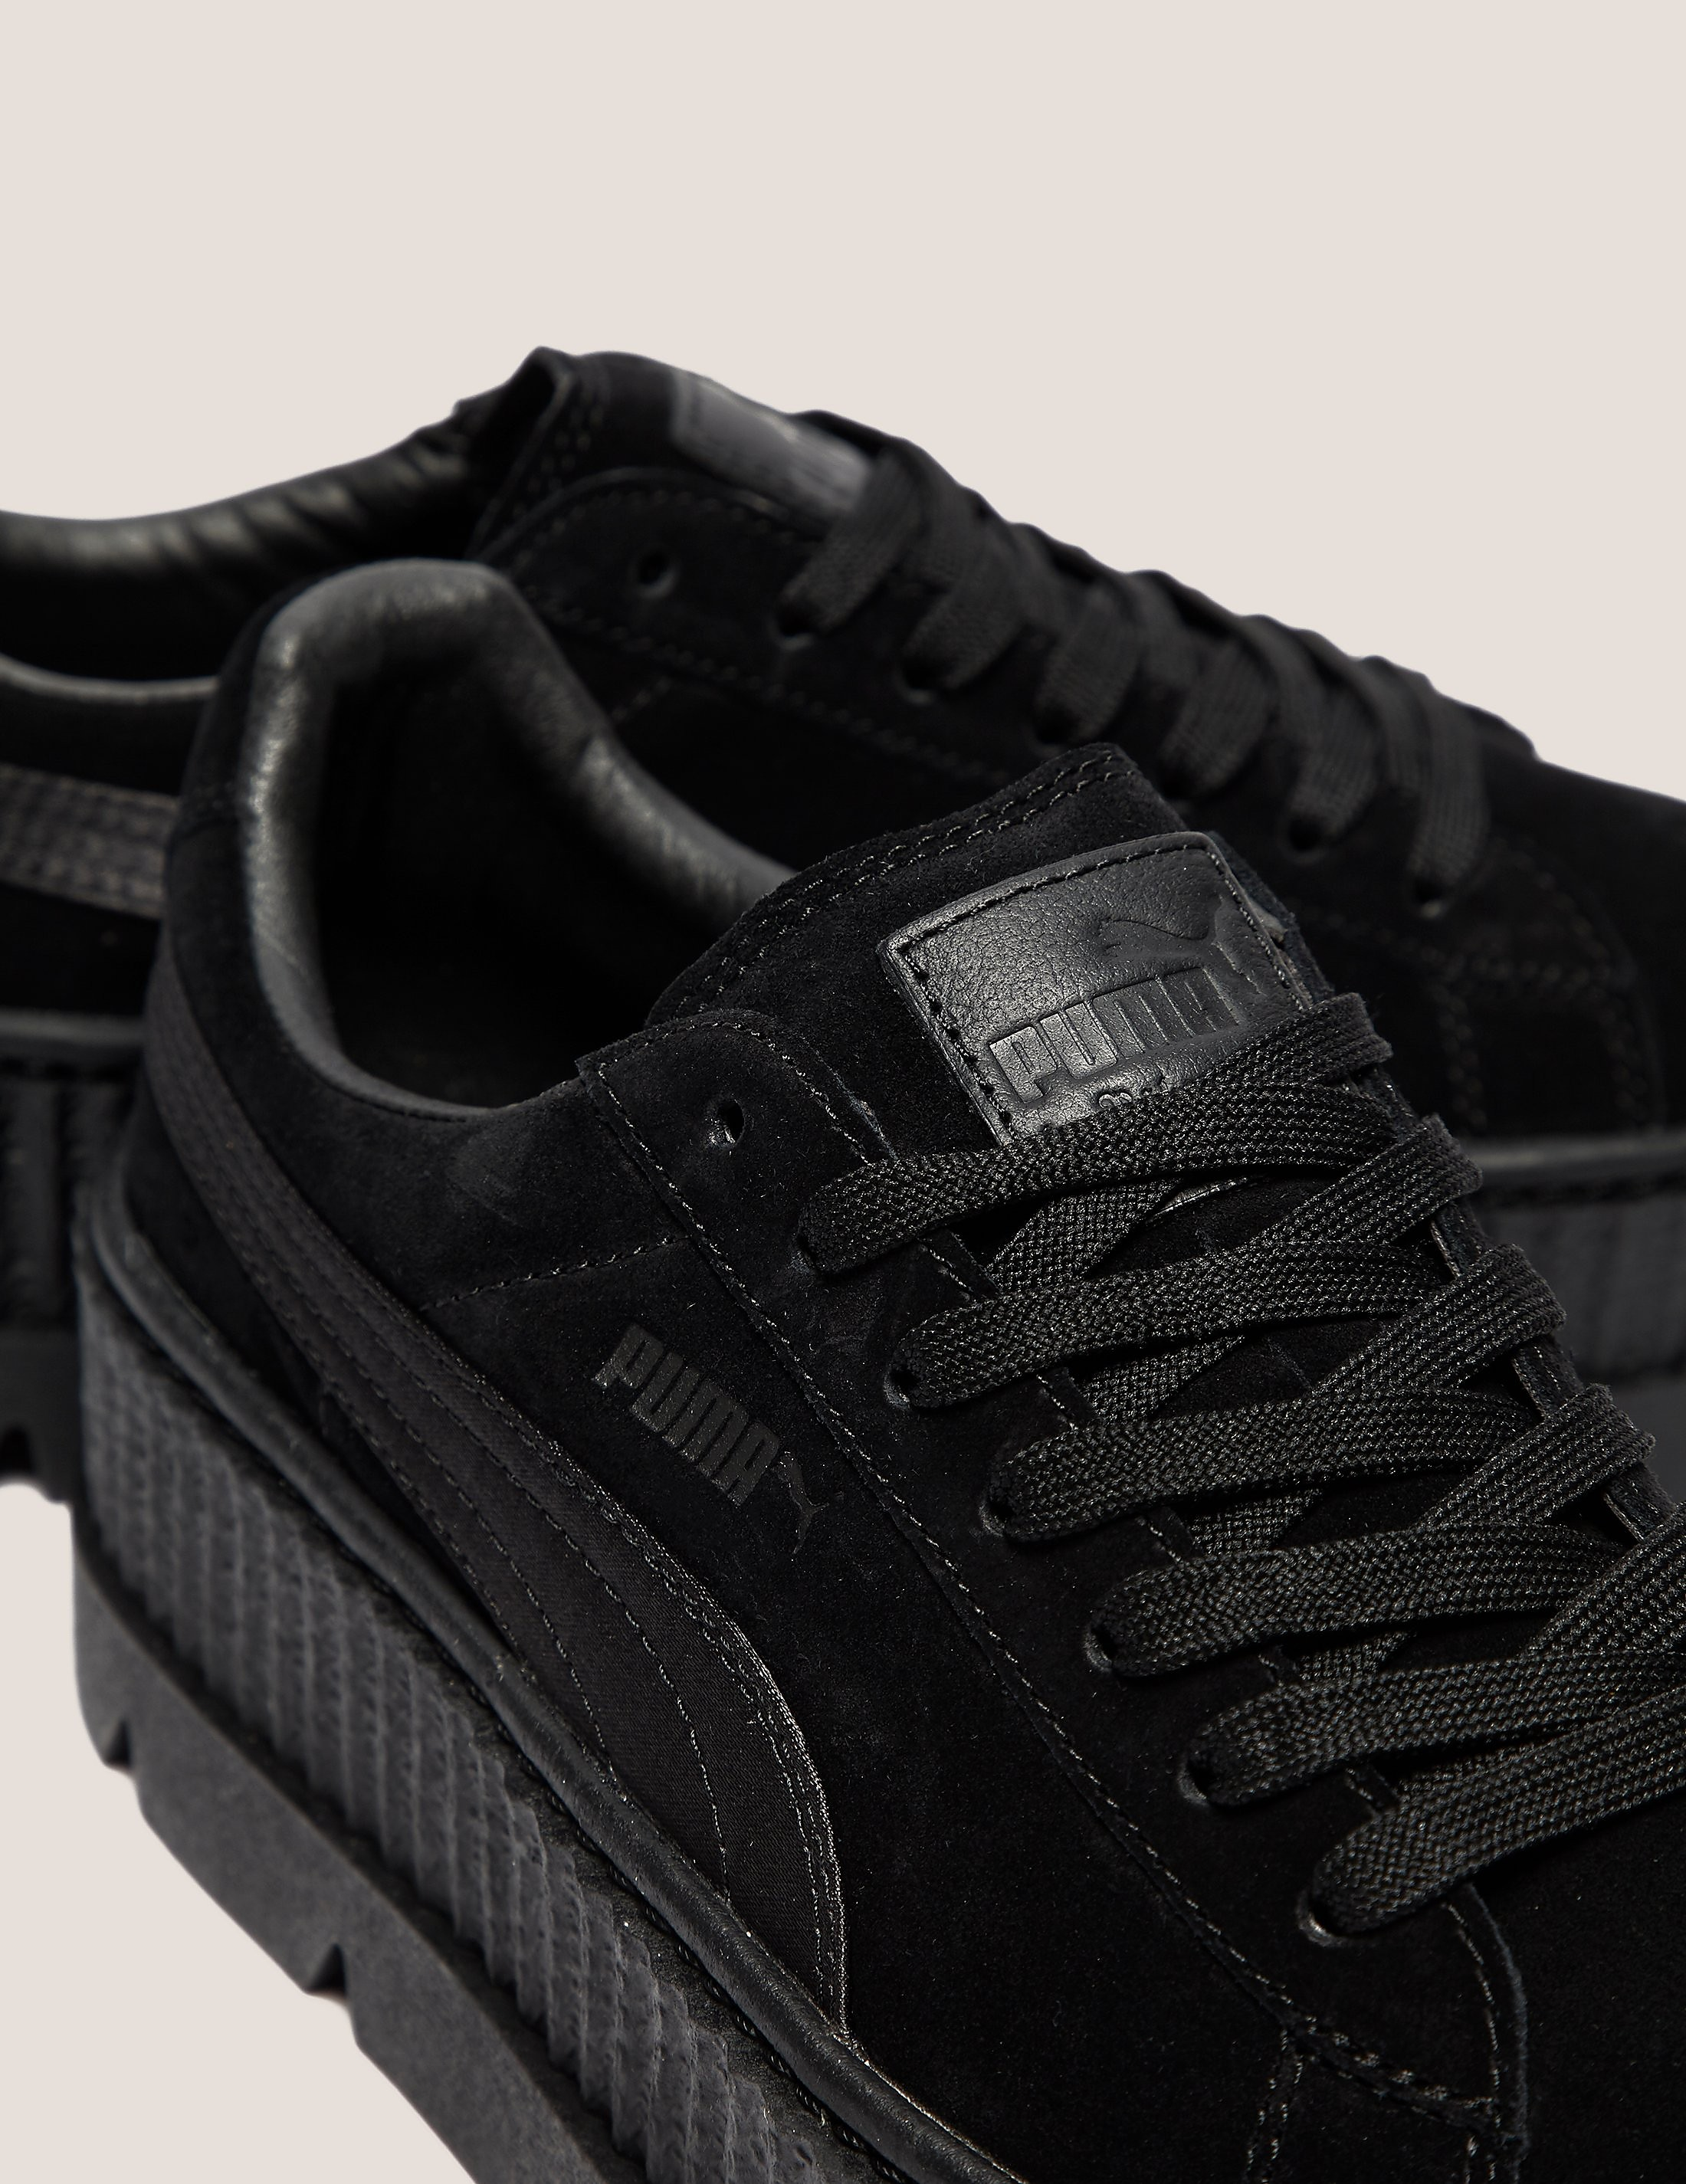 PUMA Fenty Cleated Creepers Women's